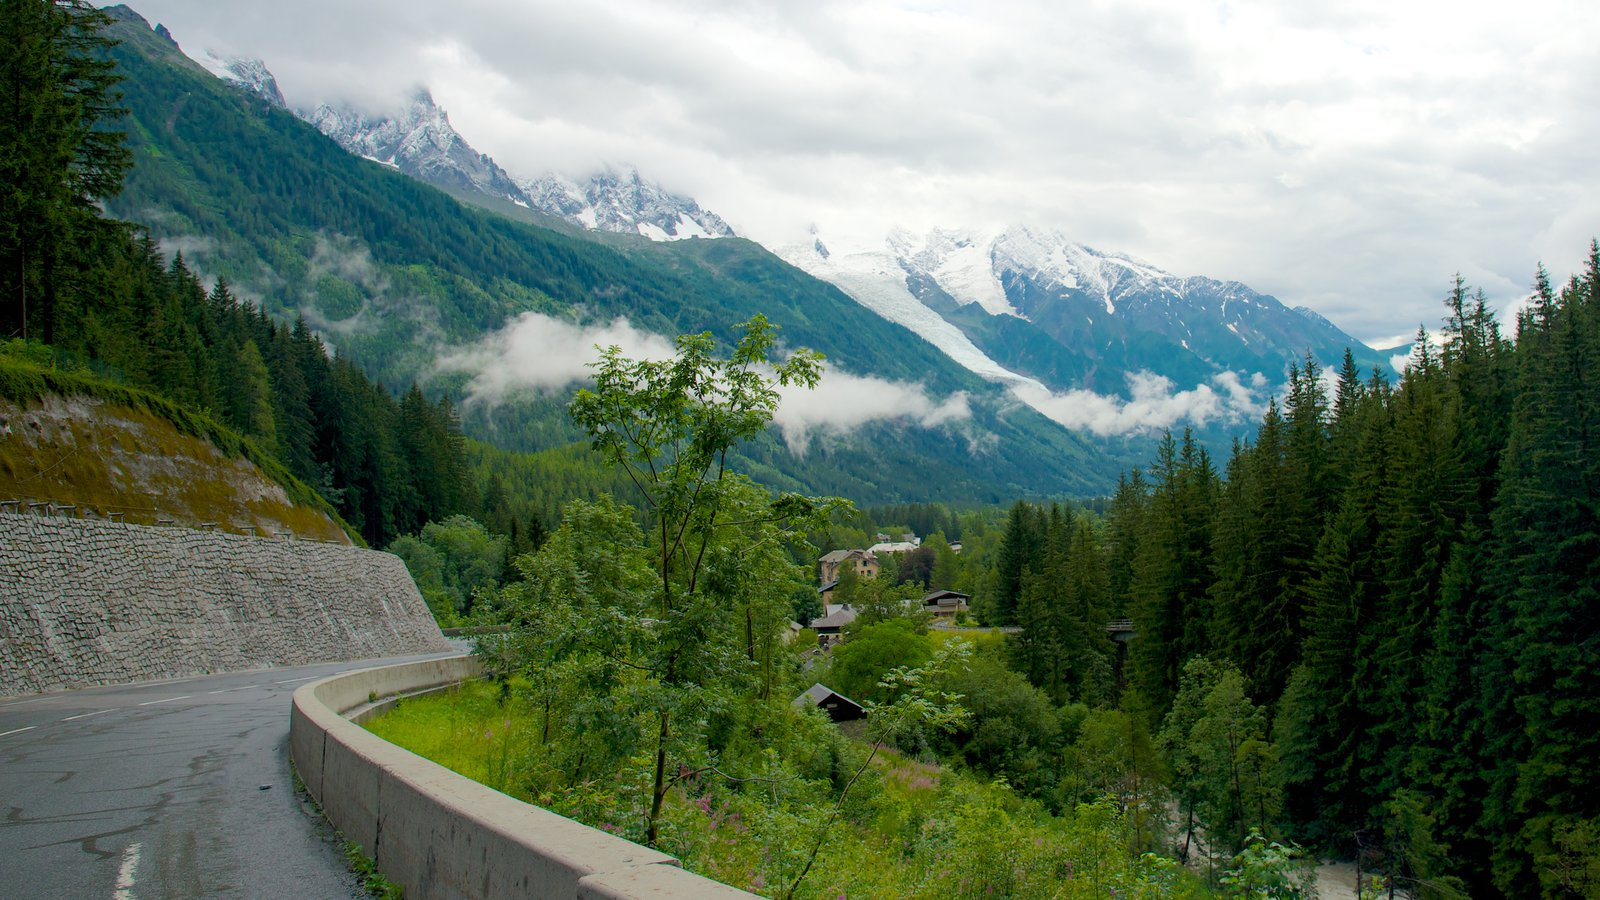 Argentiere which includes forest scenes and mountains